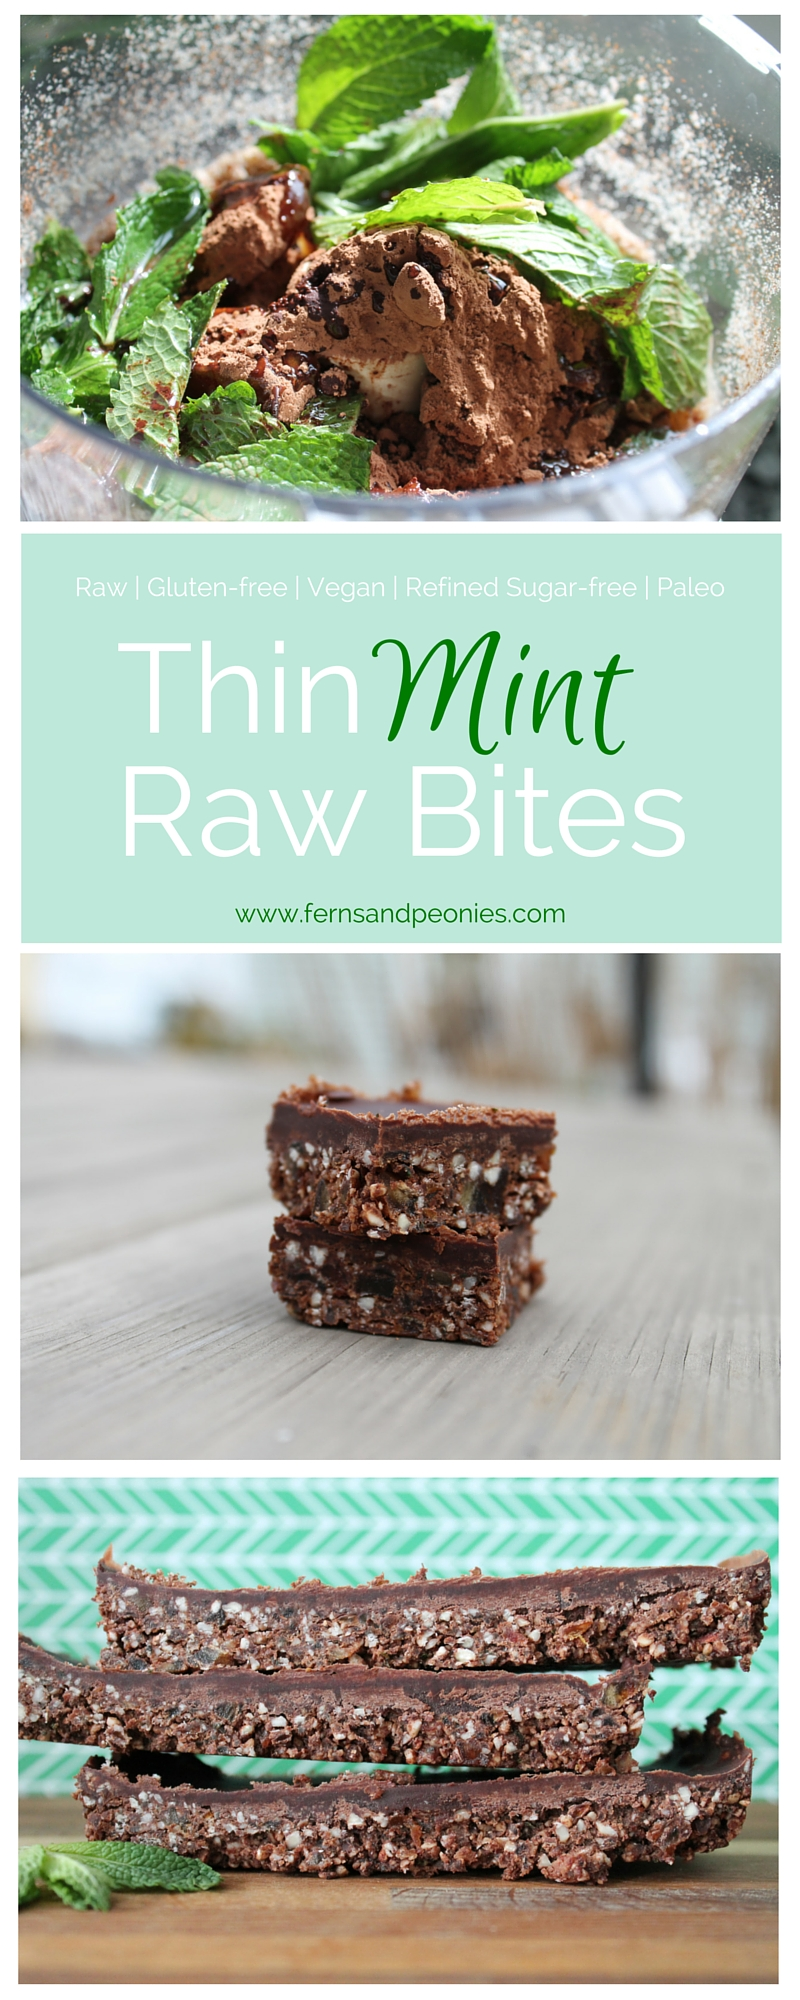 Thin Mint Raw Bites that are amazngly gluten-free, vegan, refined sugar-free and paleo. You can find the blog and recipe at www.fernsandpeonies.com